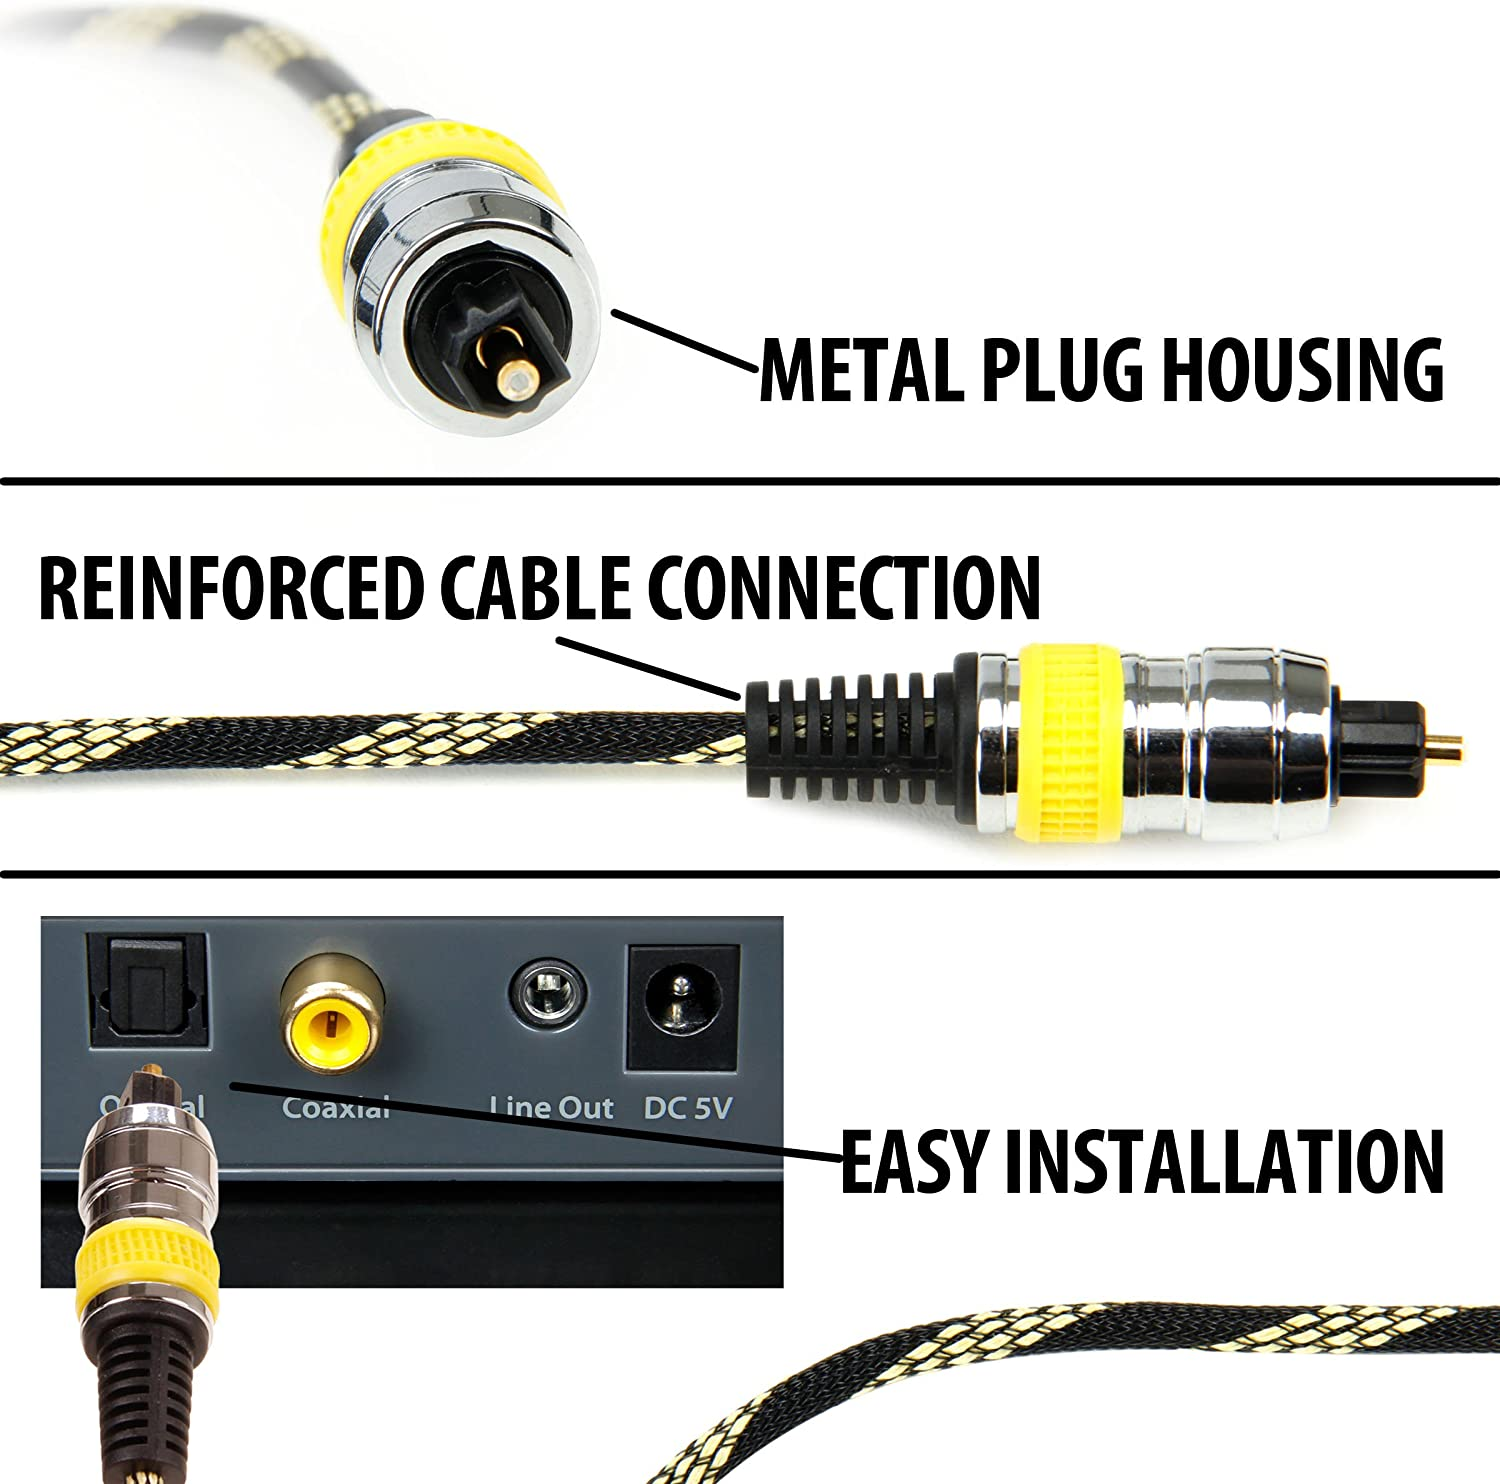 DATASTREAM Digital Audio Optical TOSLink Cable w// High Fidelity Audio Transfer /& Nylon Braided Cable Sound Bars /& A//V Receivers VIZIO E50-C1 /& More TVS Works with: Sony KDL50W800B 6